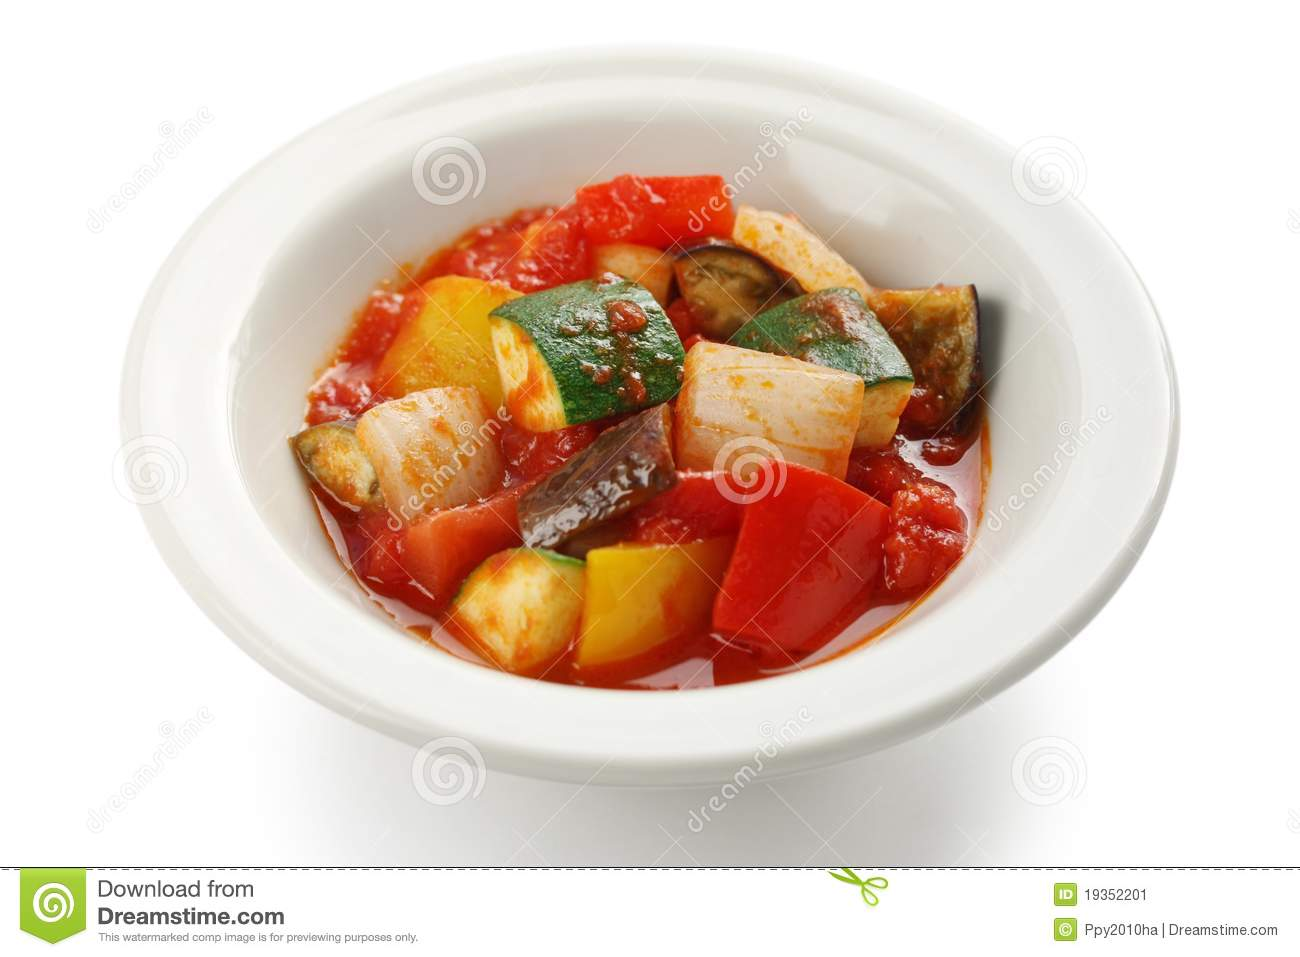 Ratatouille , French Vegetable Stew Stock Image - Image: 19352201